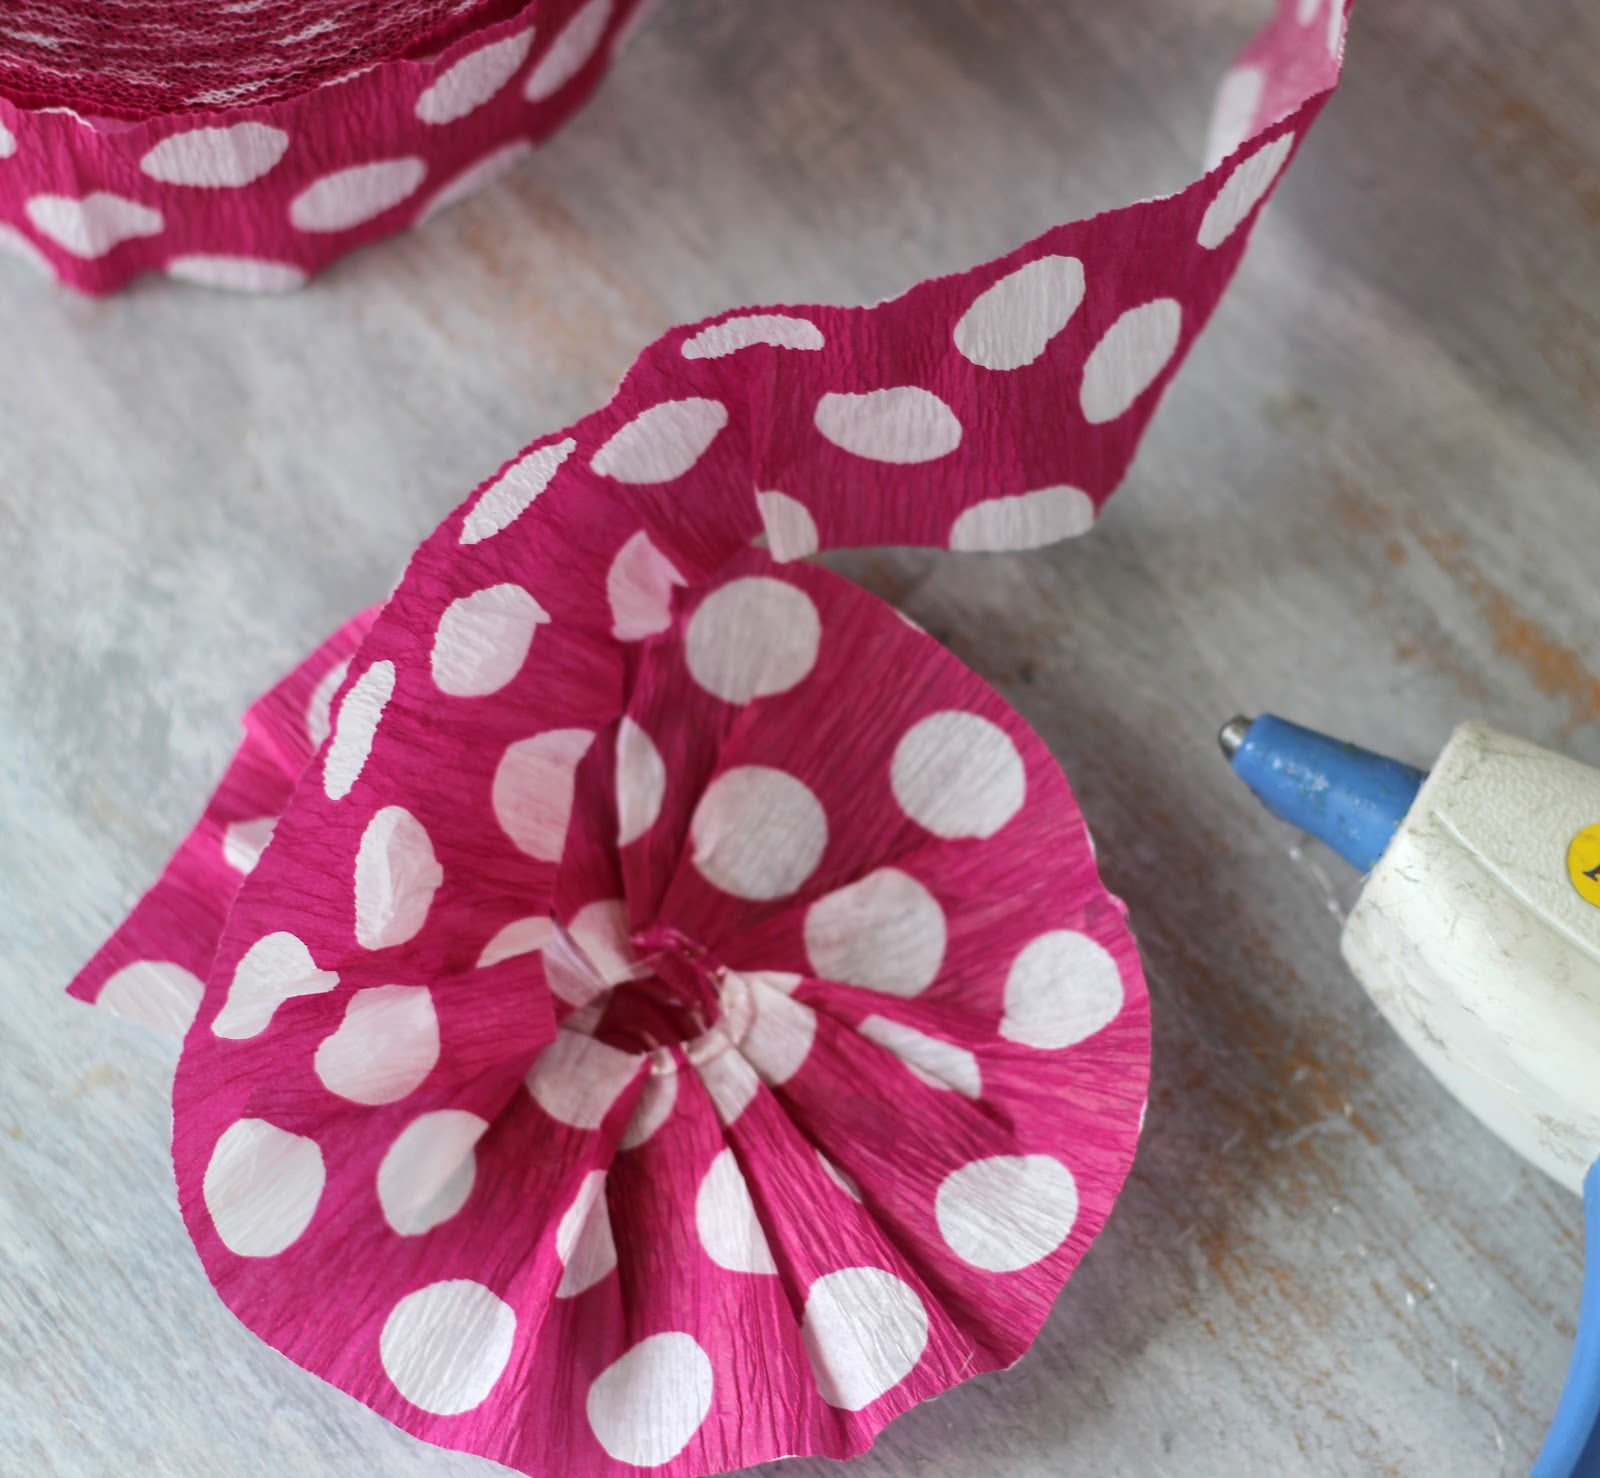 How To Make Crepe Paper Flowers Todays Creative Life